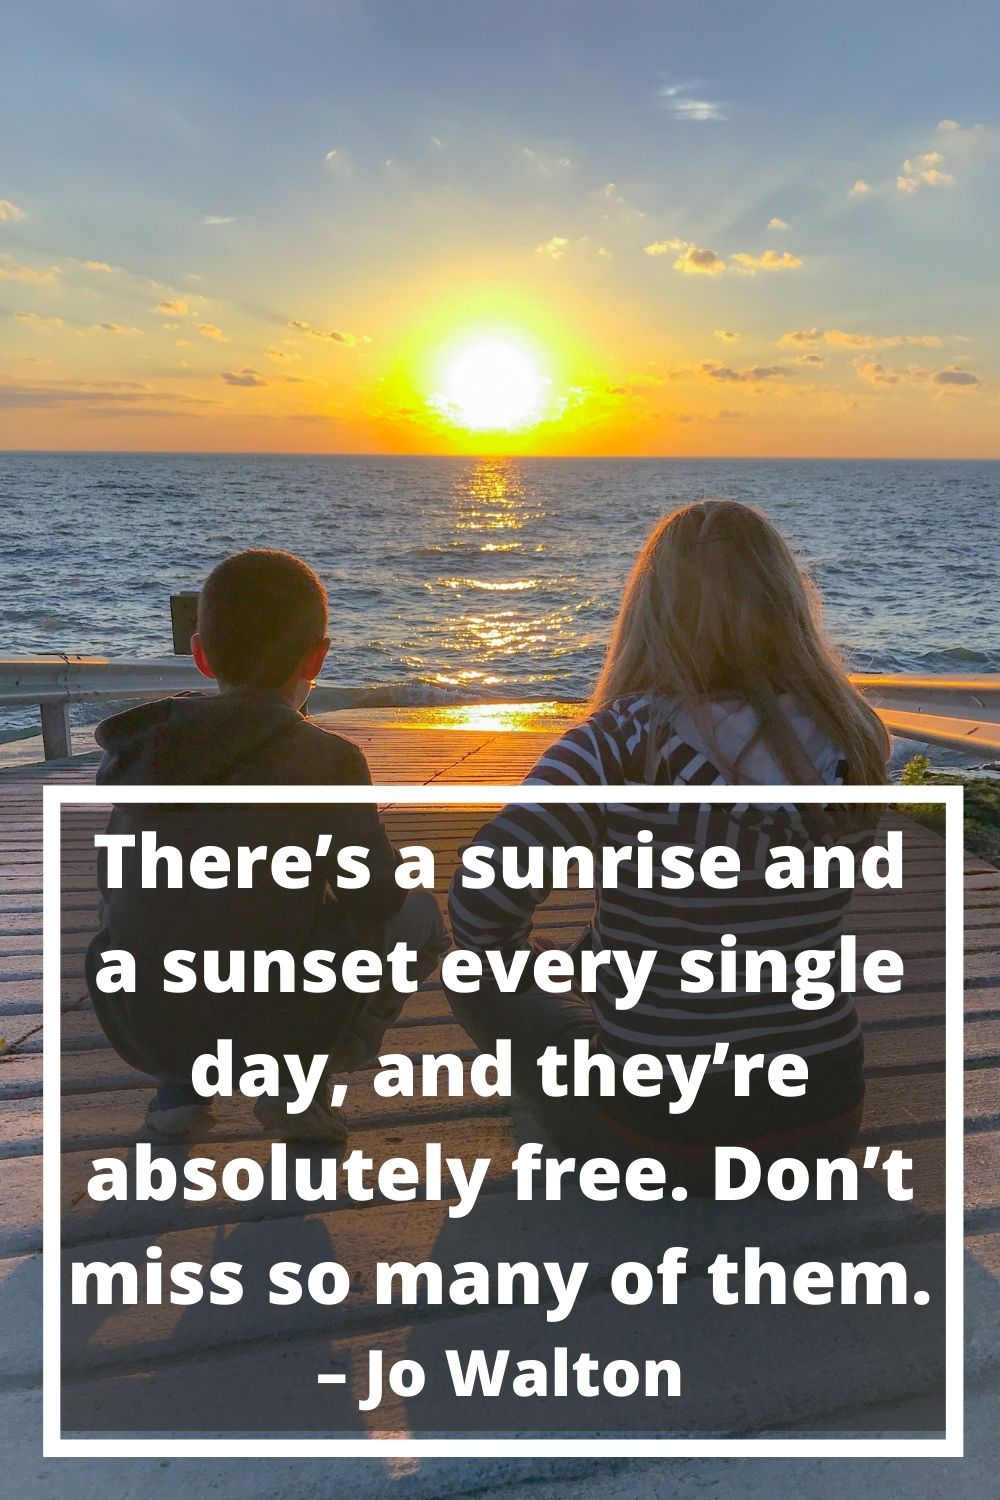 There's a sunrise and a sunset every single day, and they're absolutely free. Don't miss so many of them. – Jo Walton